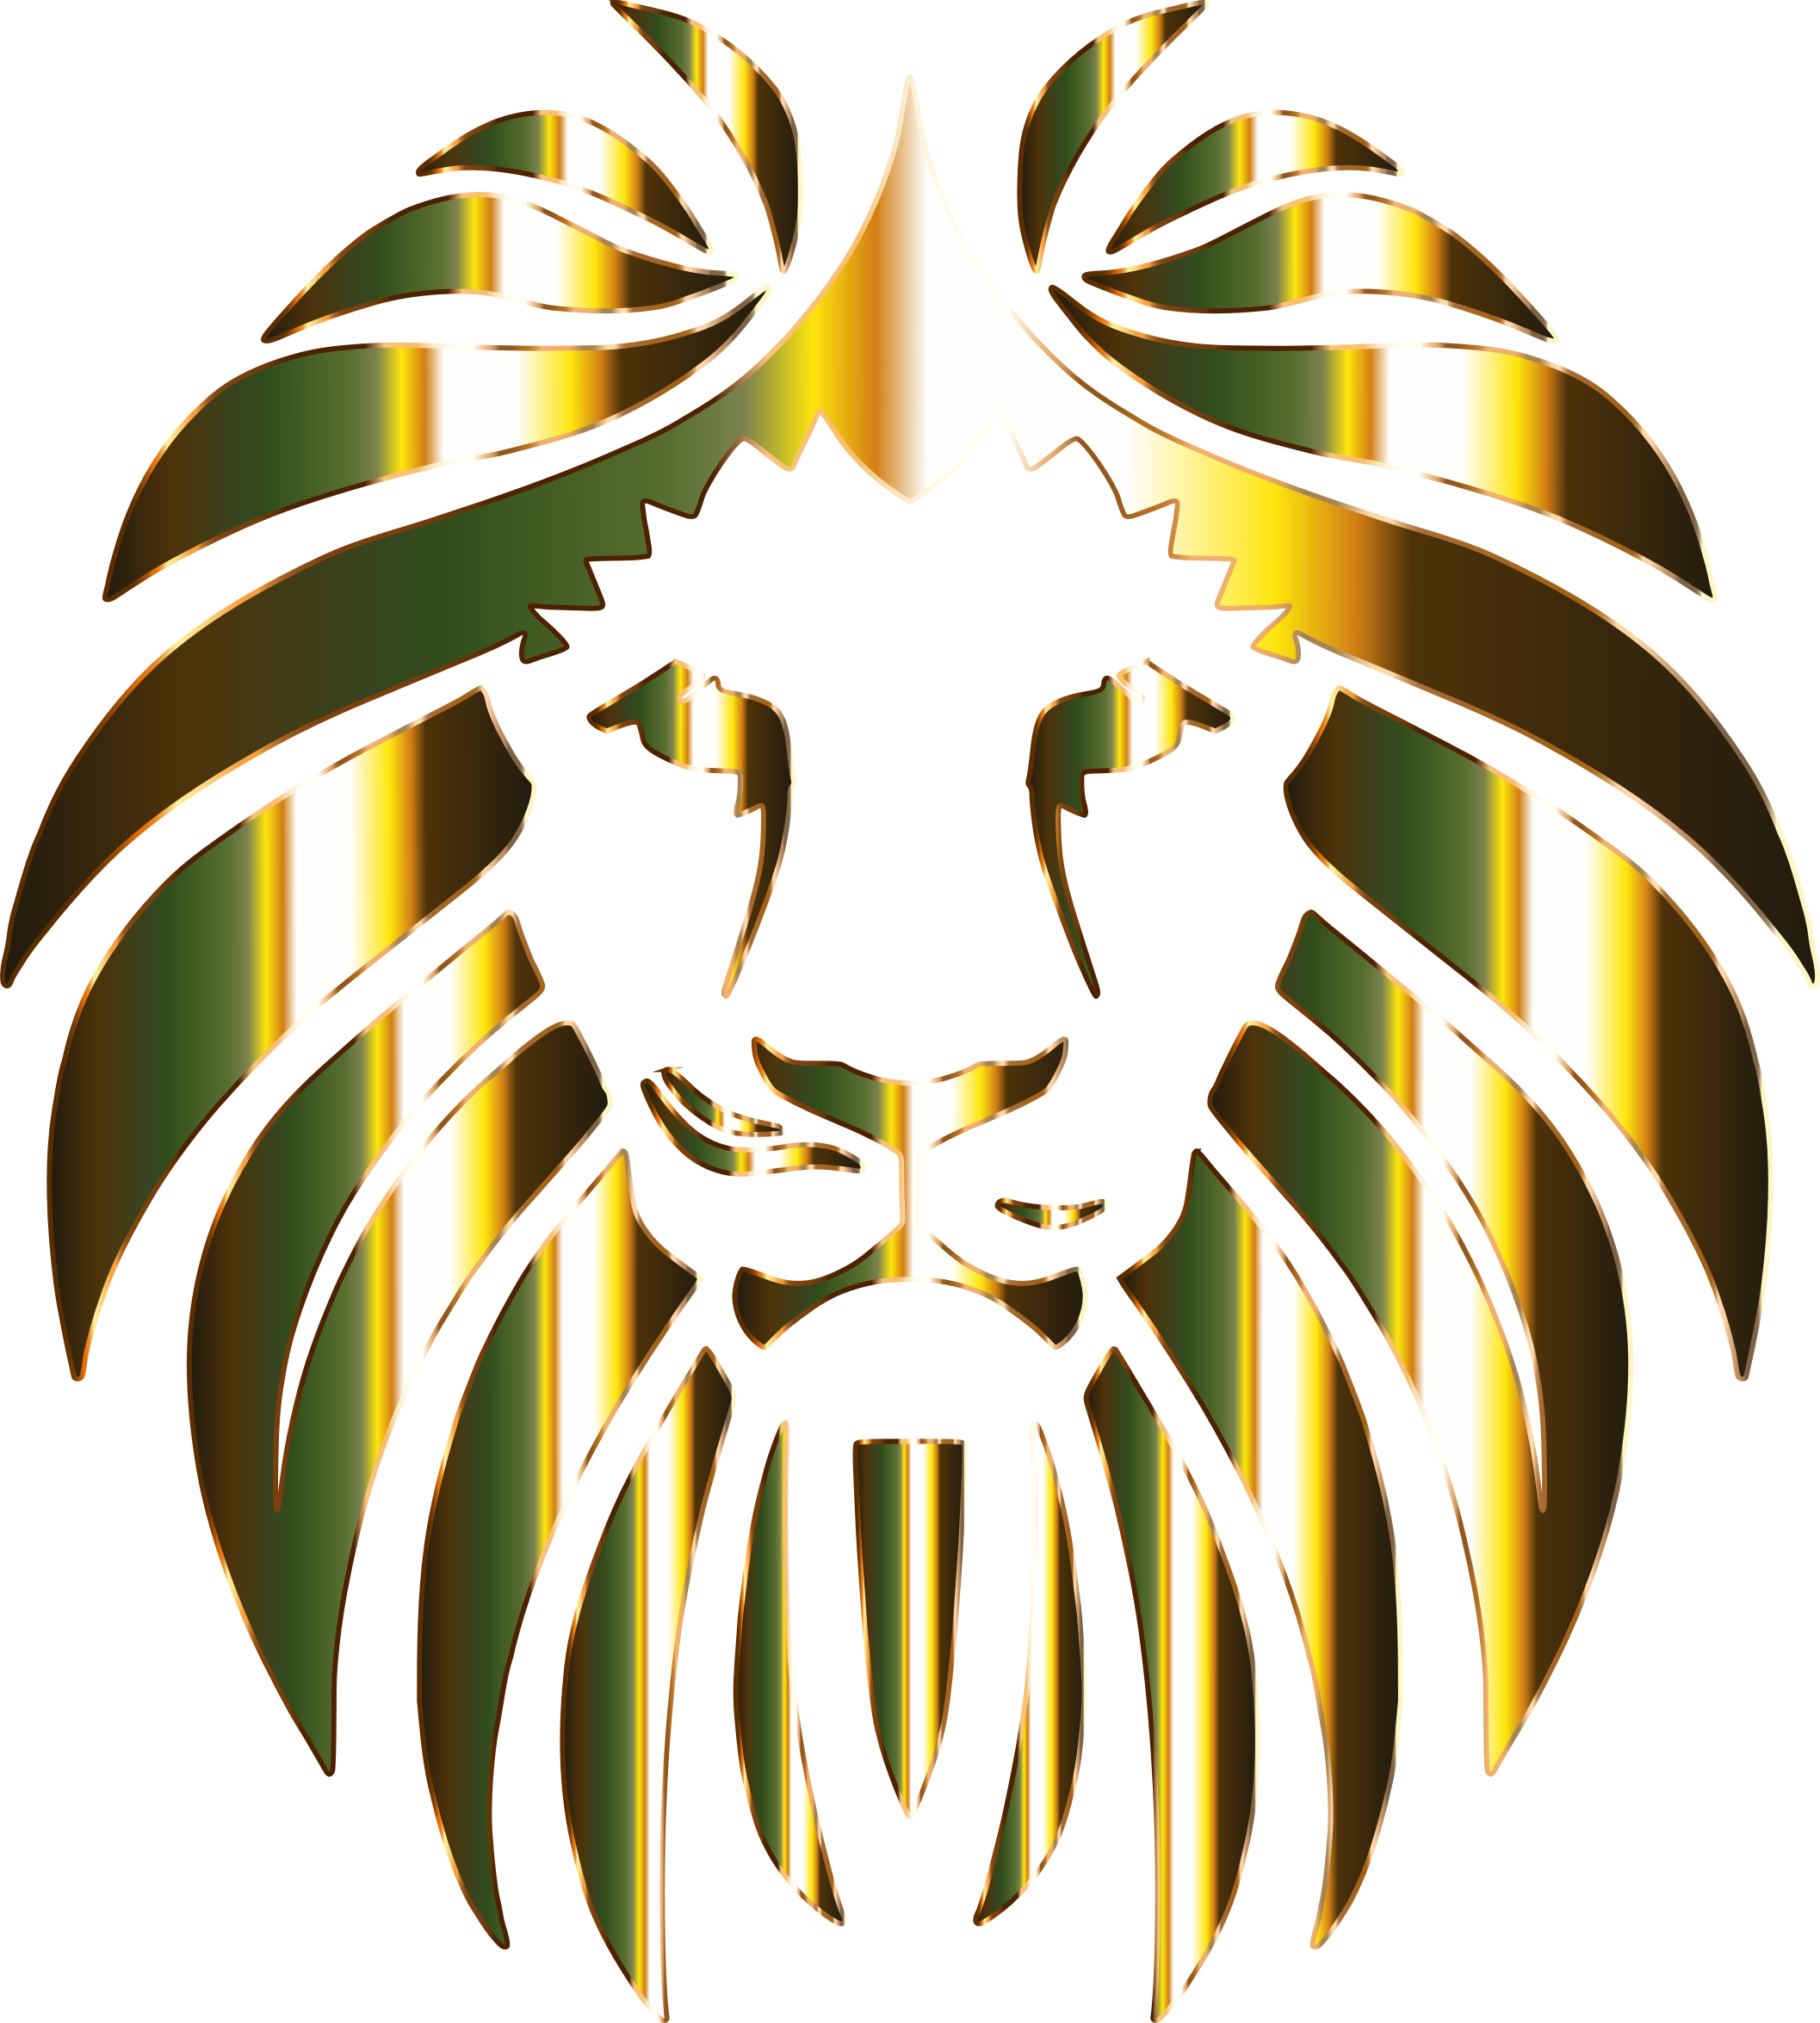 Golden Lion 6 No Background by GDJ